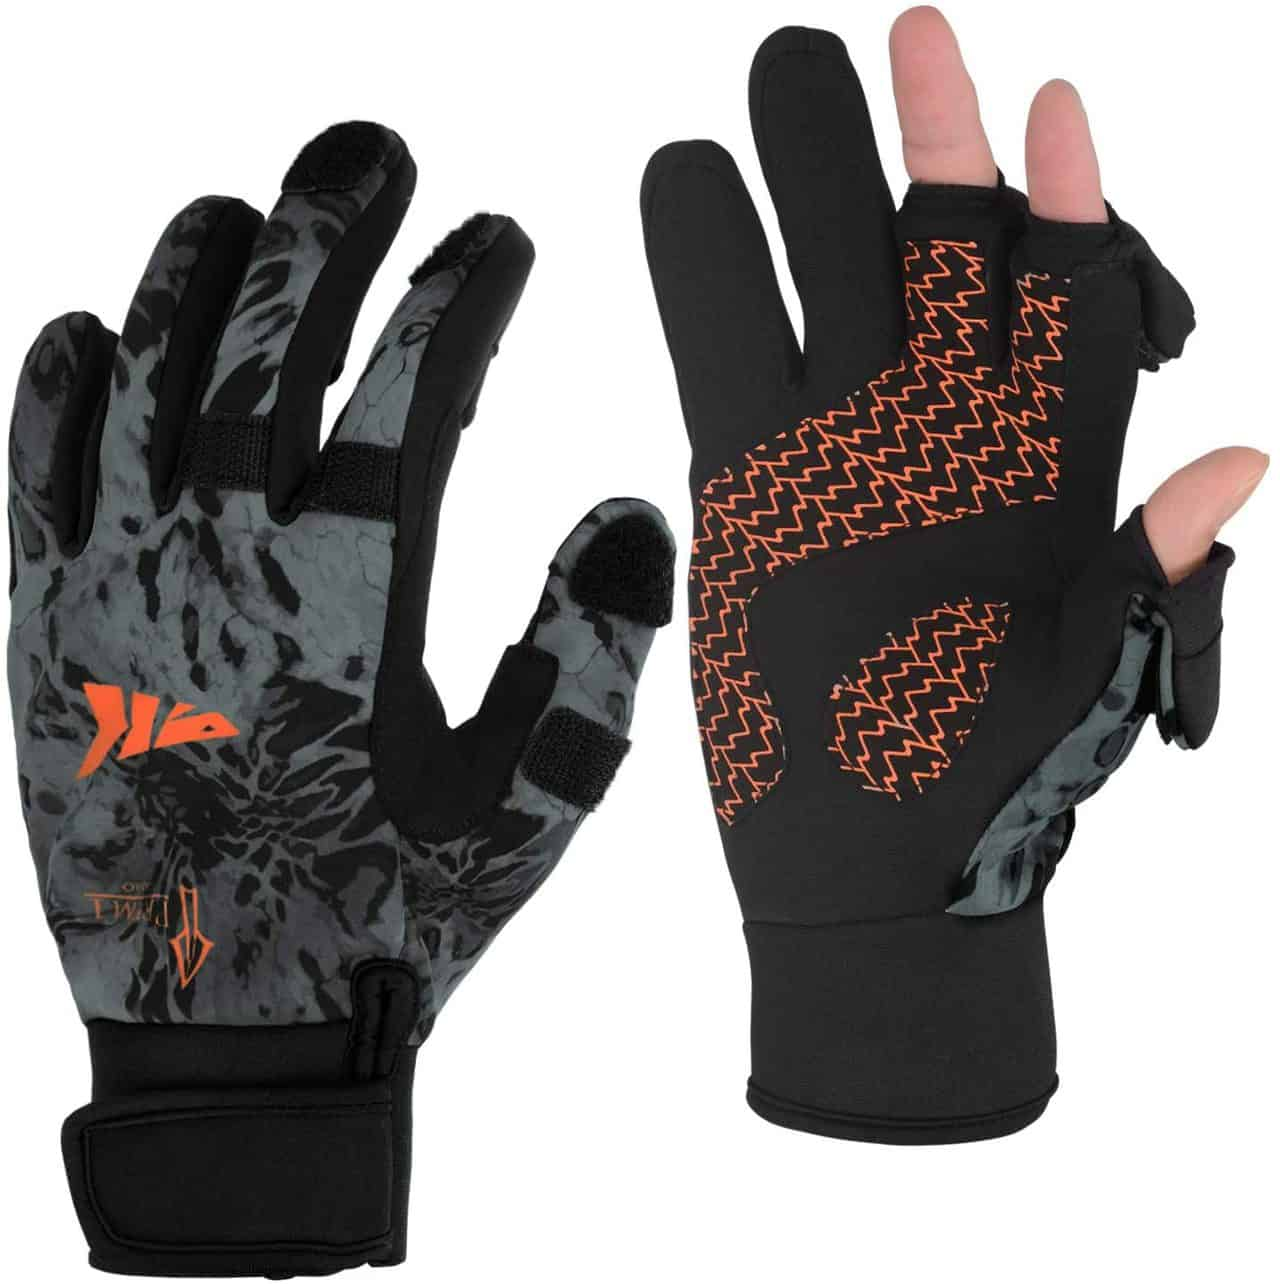 Cold Winter Fishing Gloves by KastKing Mountain